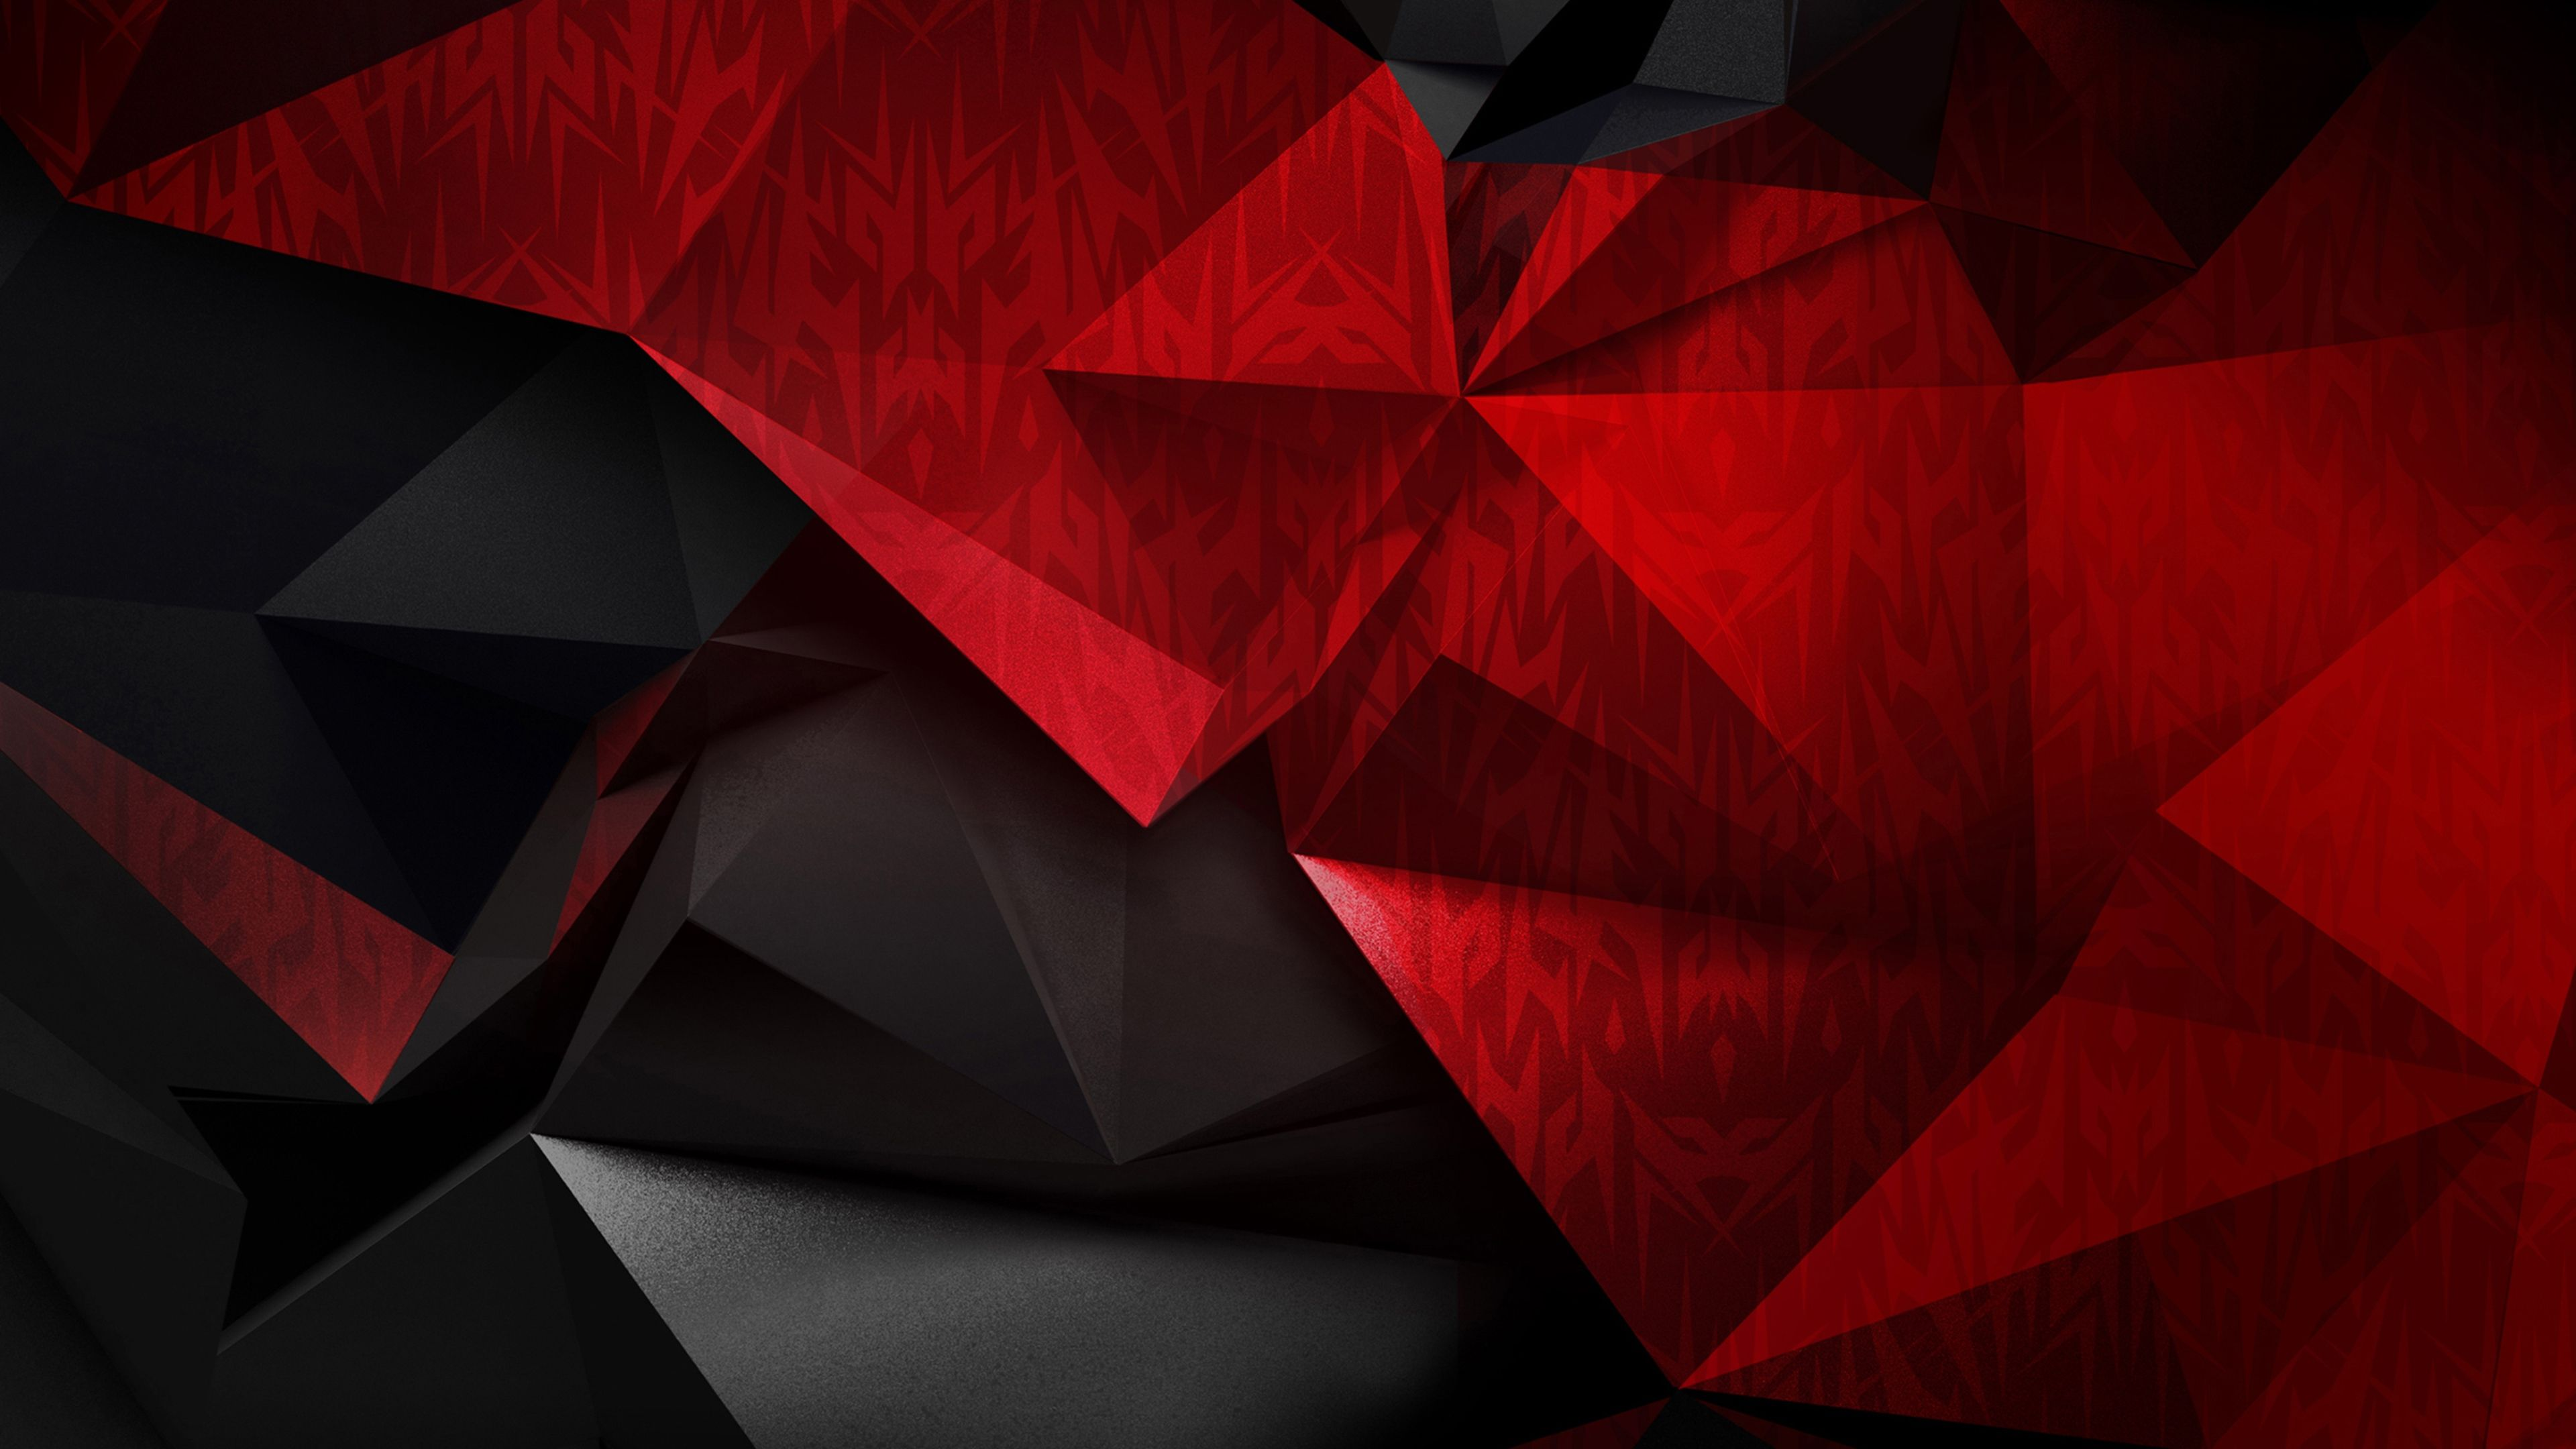 4K Red Abstract Background Acer Predator Logo 3840x2160 UHD Wallpaper